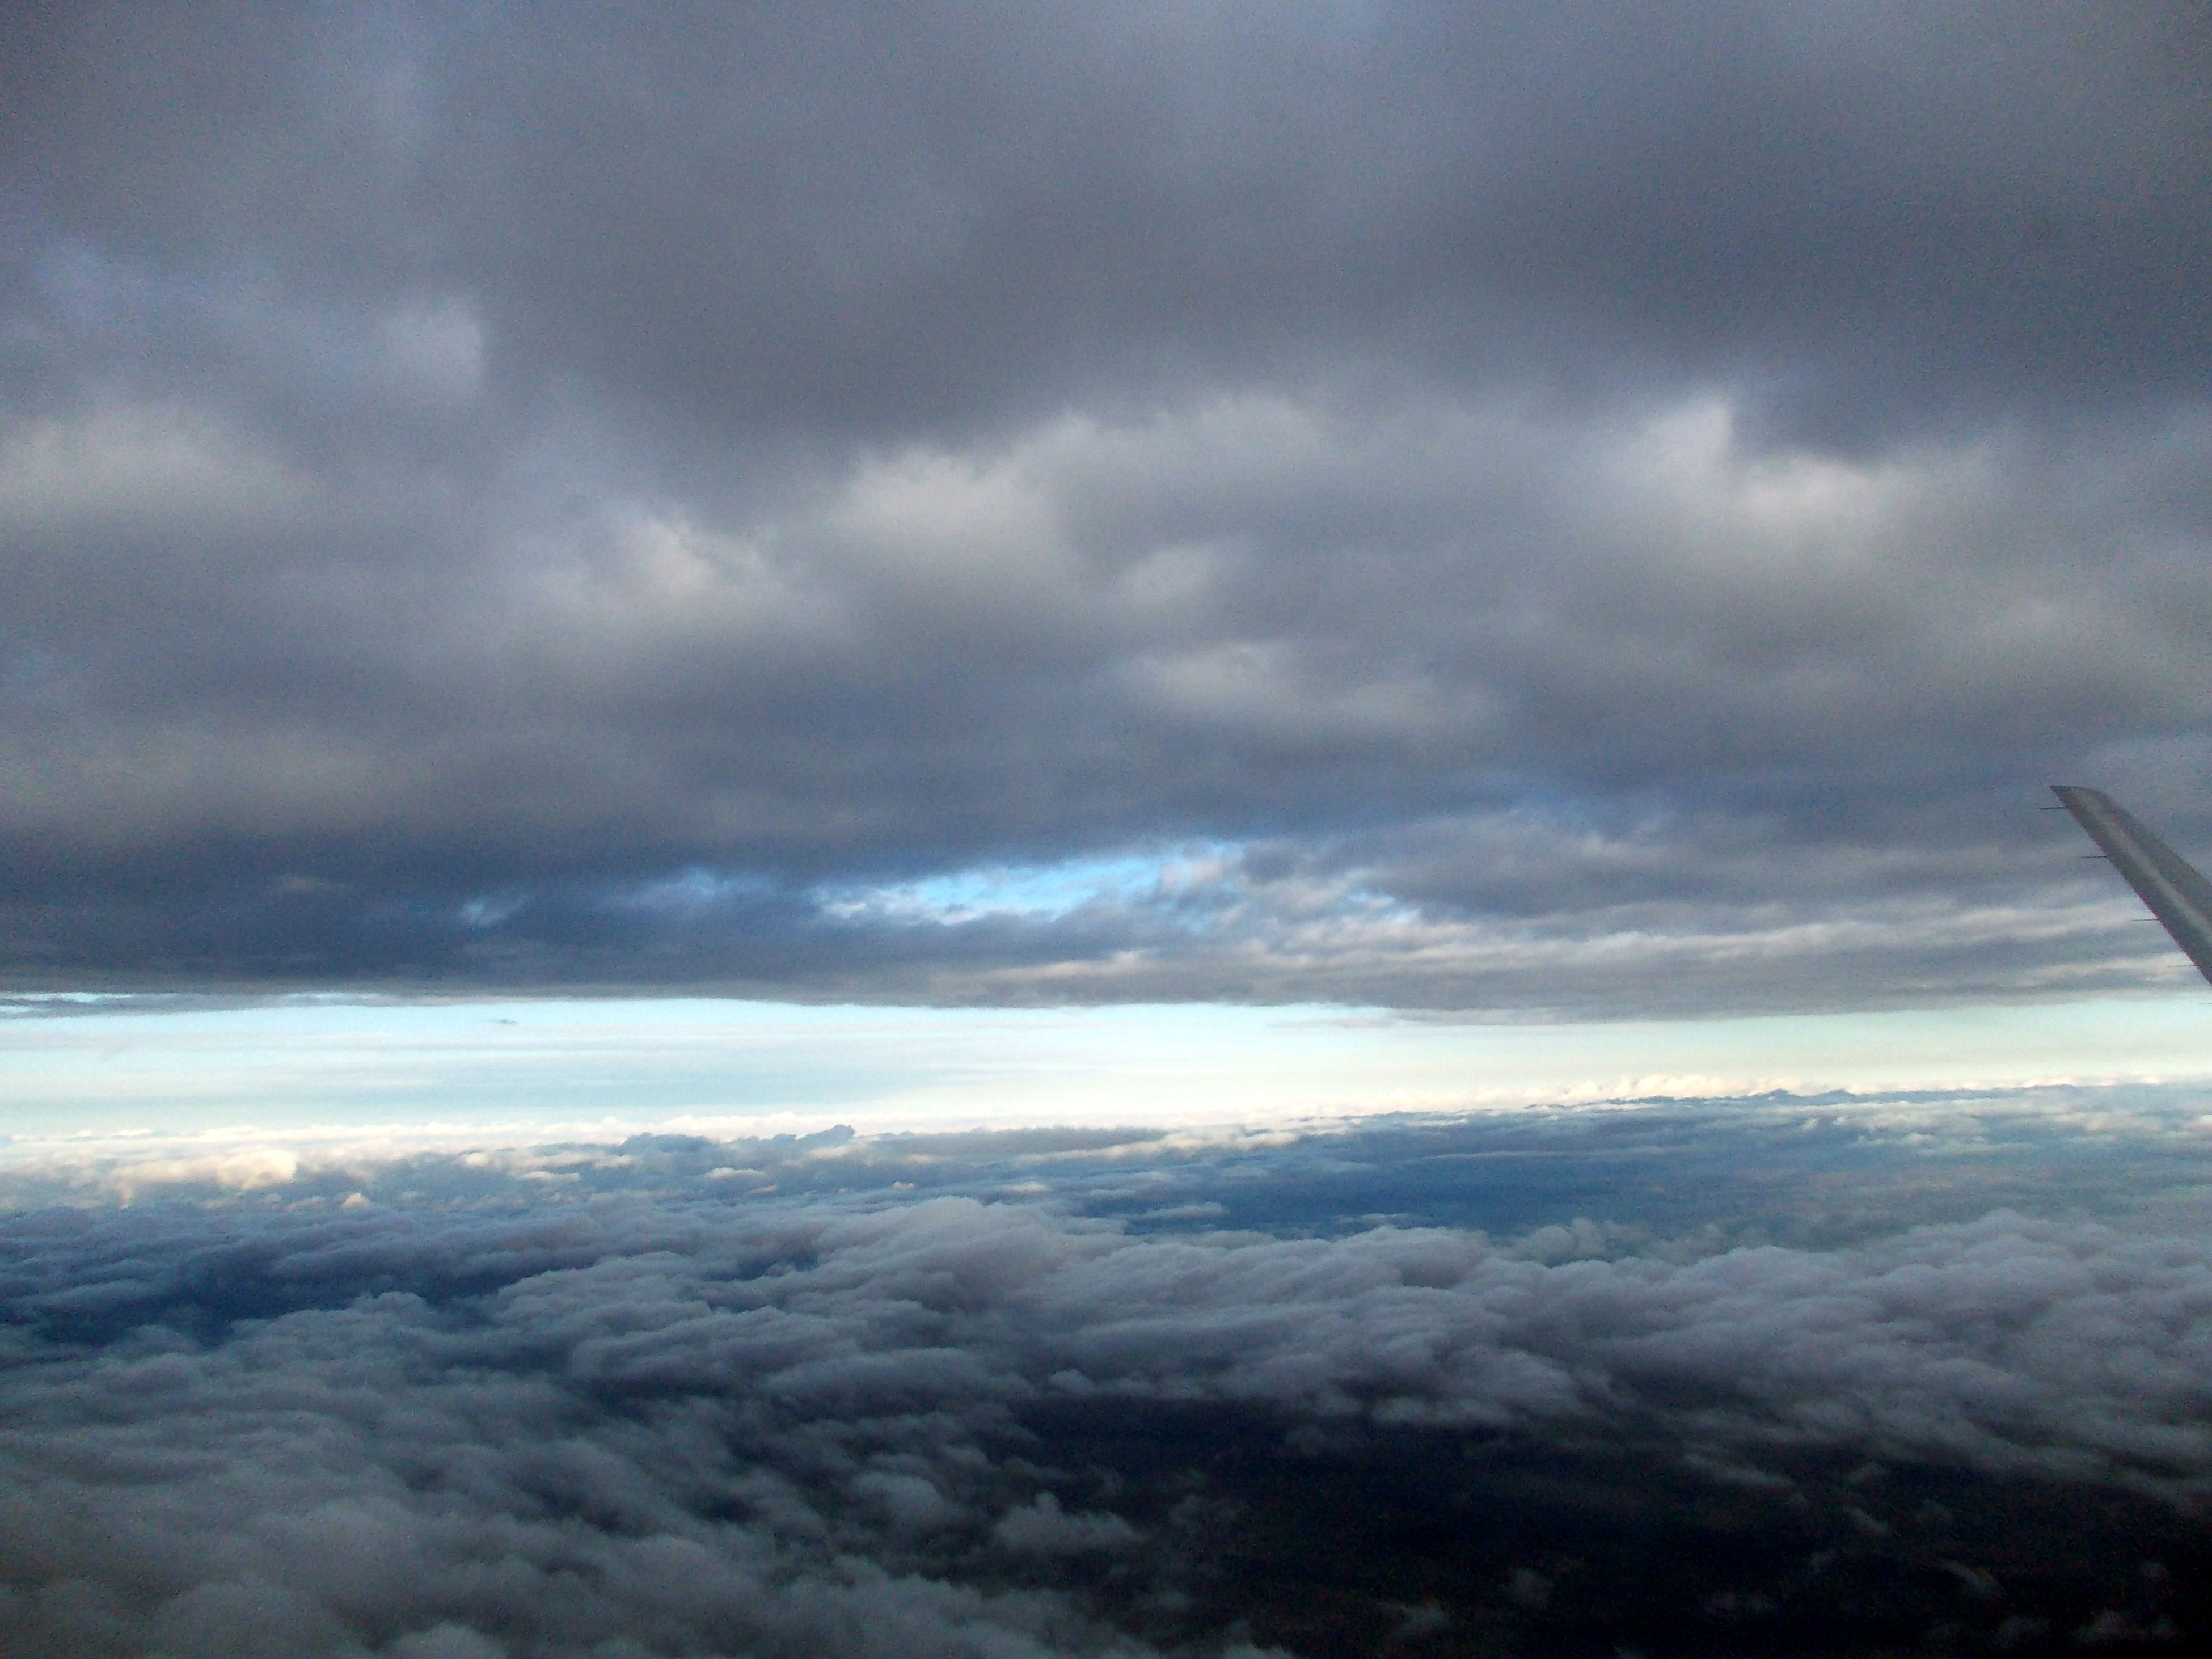 sky, cloud - sky, weather, scenics, cloudy, beauty in nature, tranquil scene, tranquility, cloudscape, nature, overcast, storm cloud, cloud, landscape, airplane, idyllic, dramatic sky, aerial view, atmospheric mood, dusk